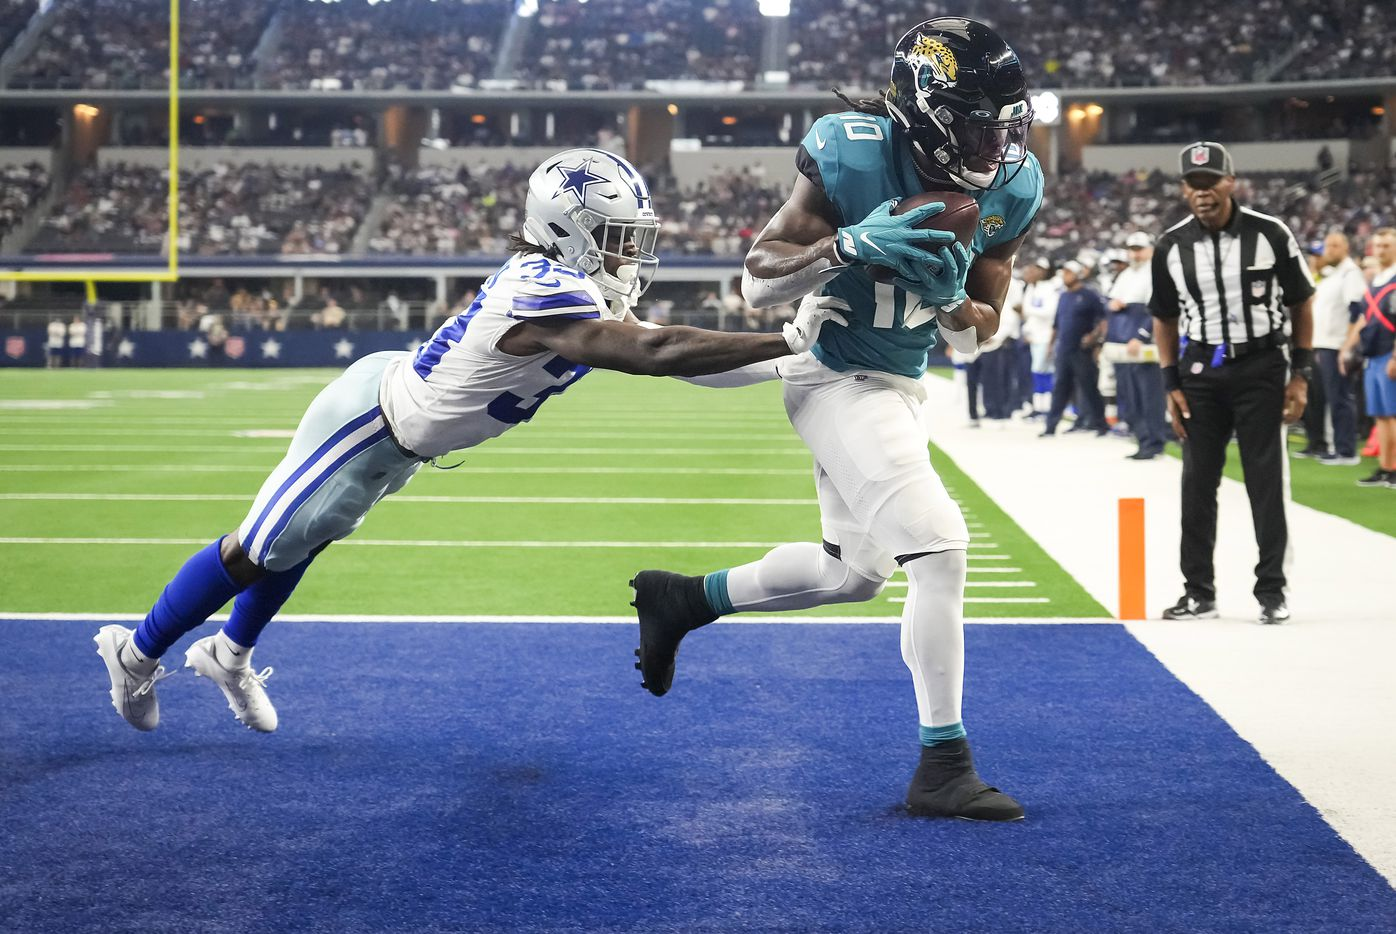 Jacksonville Jaguars wide receiver Laviska Shenault Jr. (10) hauls in a touchdown  pass as Dallas Cowboys defensive back Deante Burton (33) defends during the first half of a preseason NFL football game at AT&T Stadium on Sunday, Aug. 29, 2021, in Arlington. (Smiley N. Pool/The Dallas Morning News)